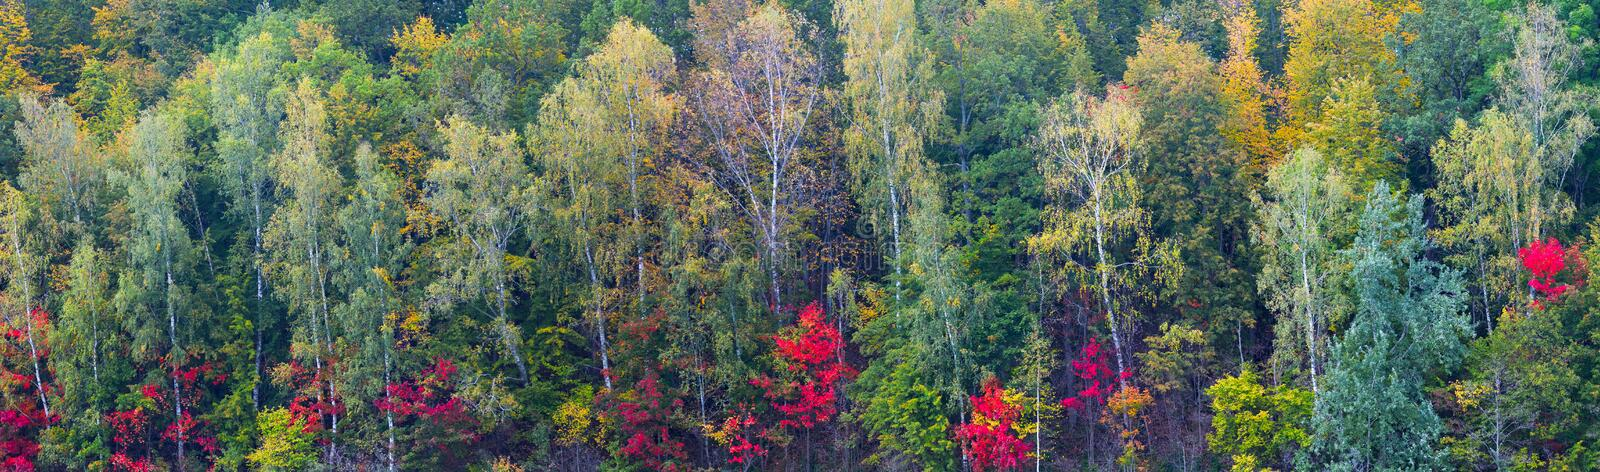 Autumn forest foliage colorful long big panorama background royalty free stock image